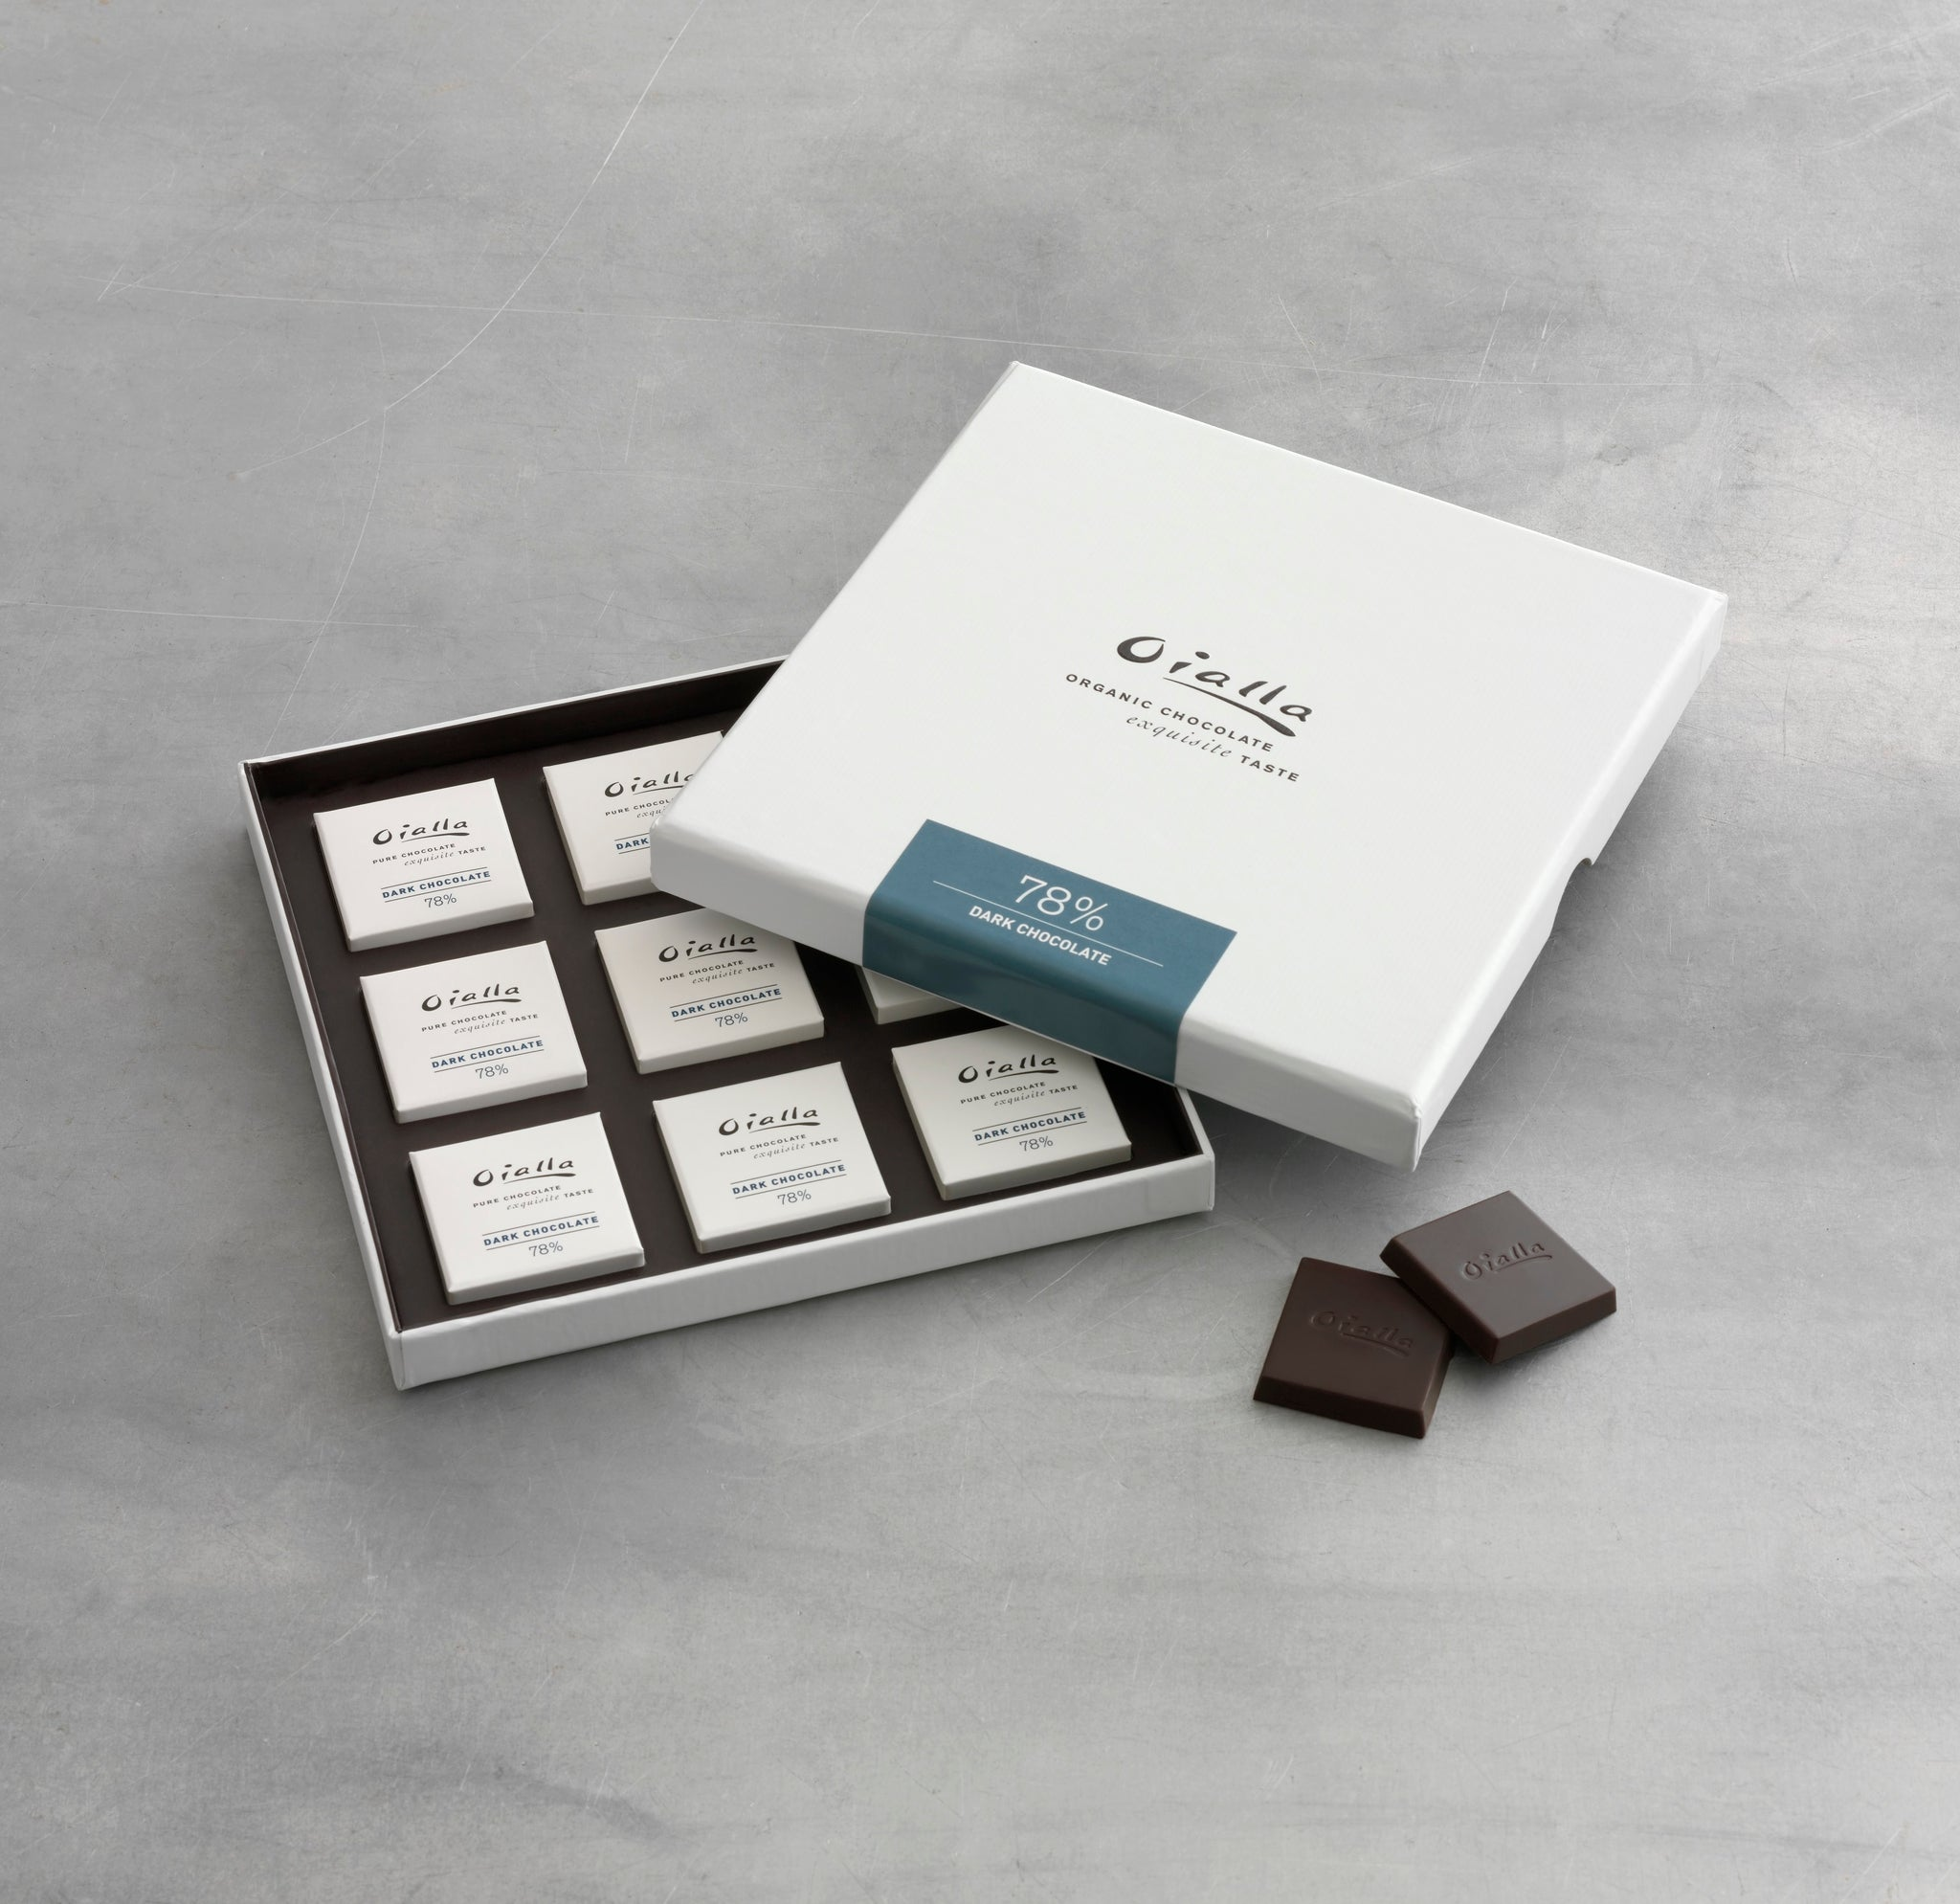 Gift box - 78% organic dark chocolate